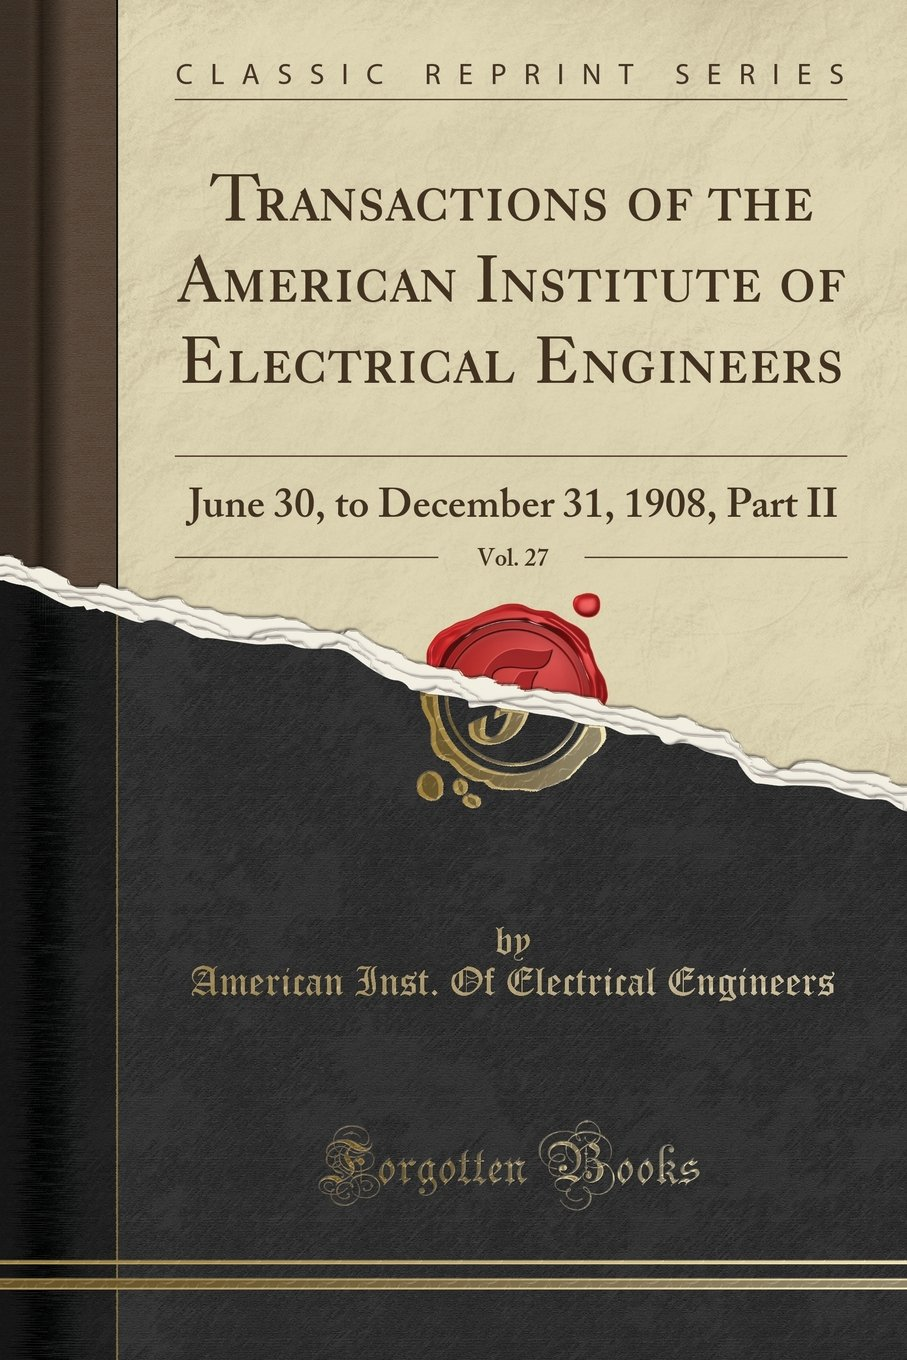 Download Transactions of the American Institute of Electrical Engineers, Vol. 27: June 30, to December 31, 1908, Part II (Classic Reprint) PDF